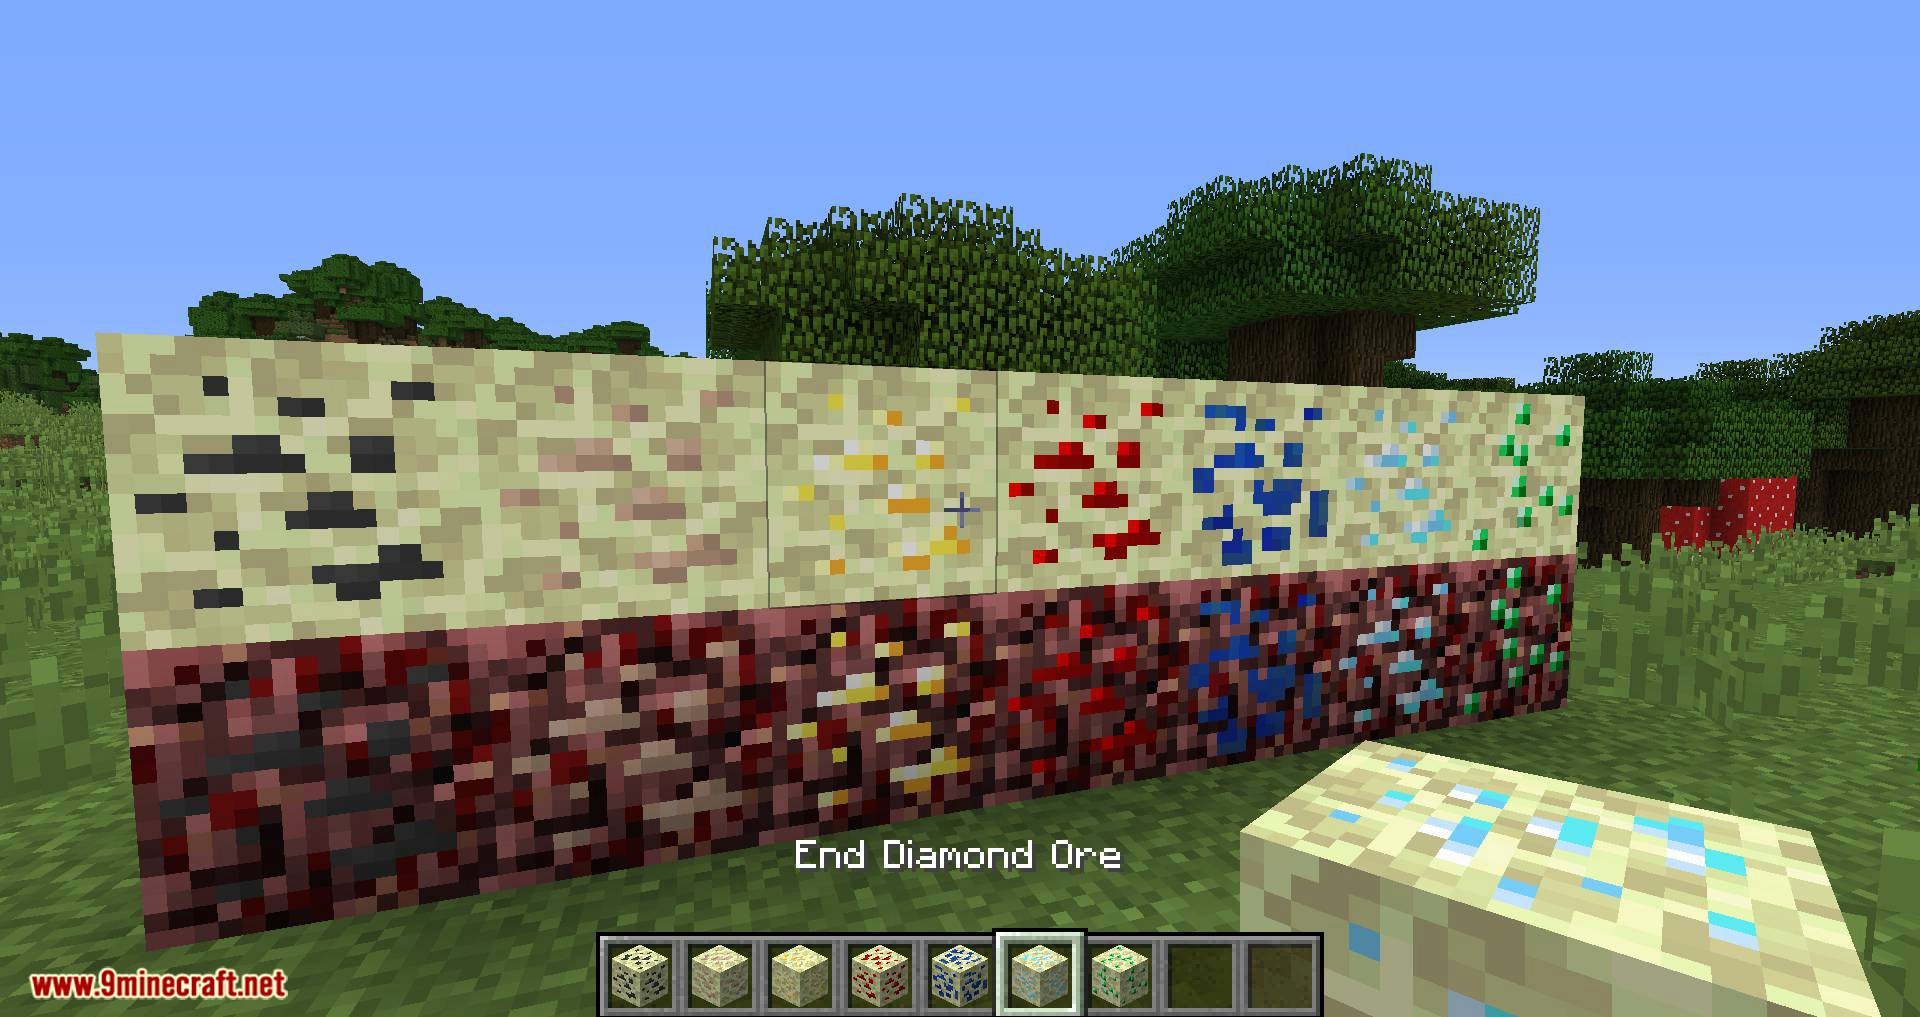 Pomarf_s Dimensional Ores mod for minecraft 02